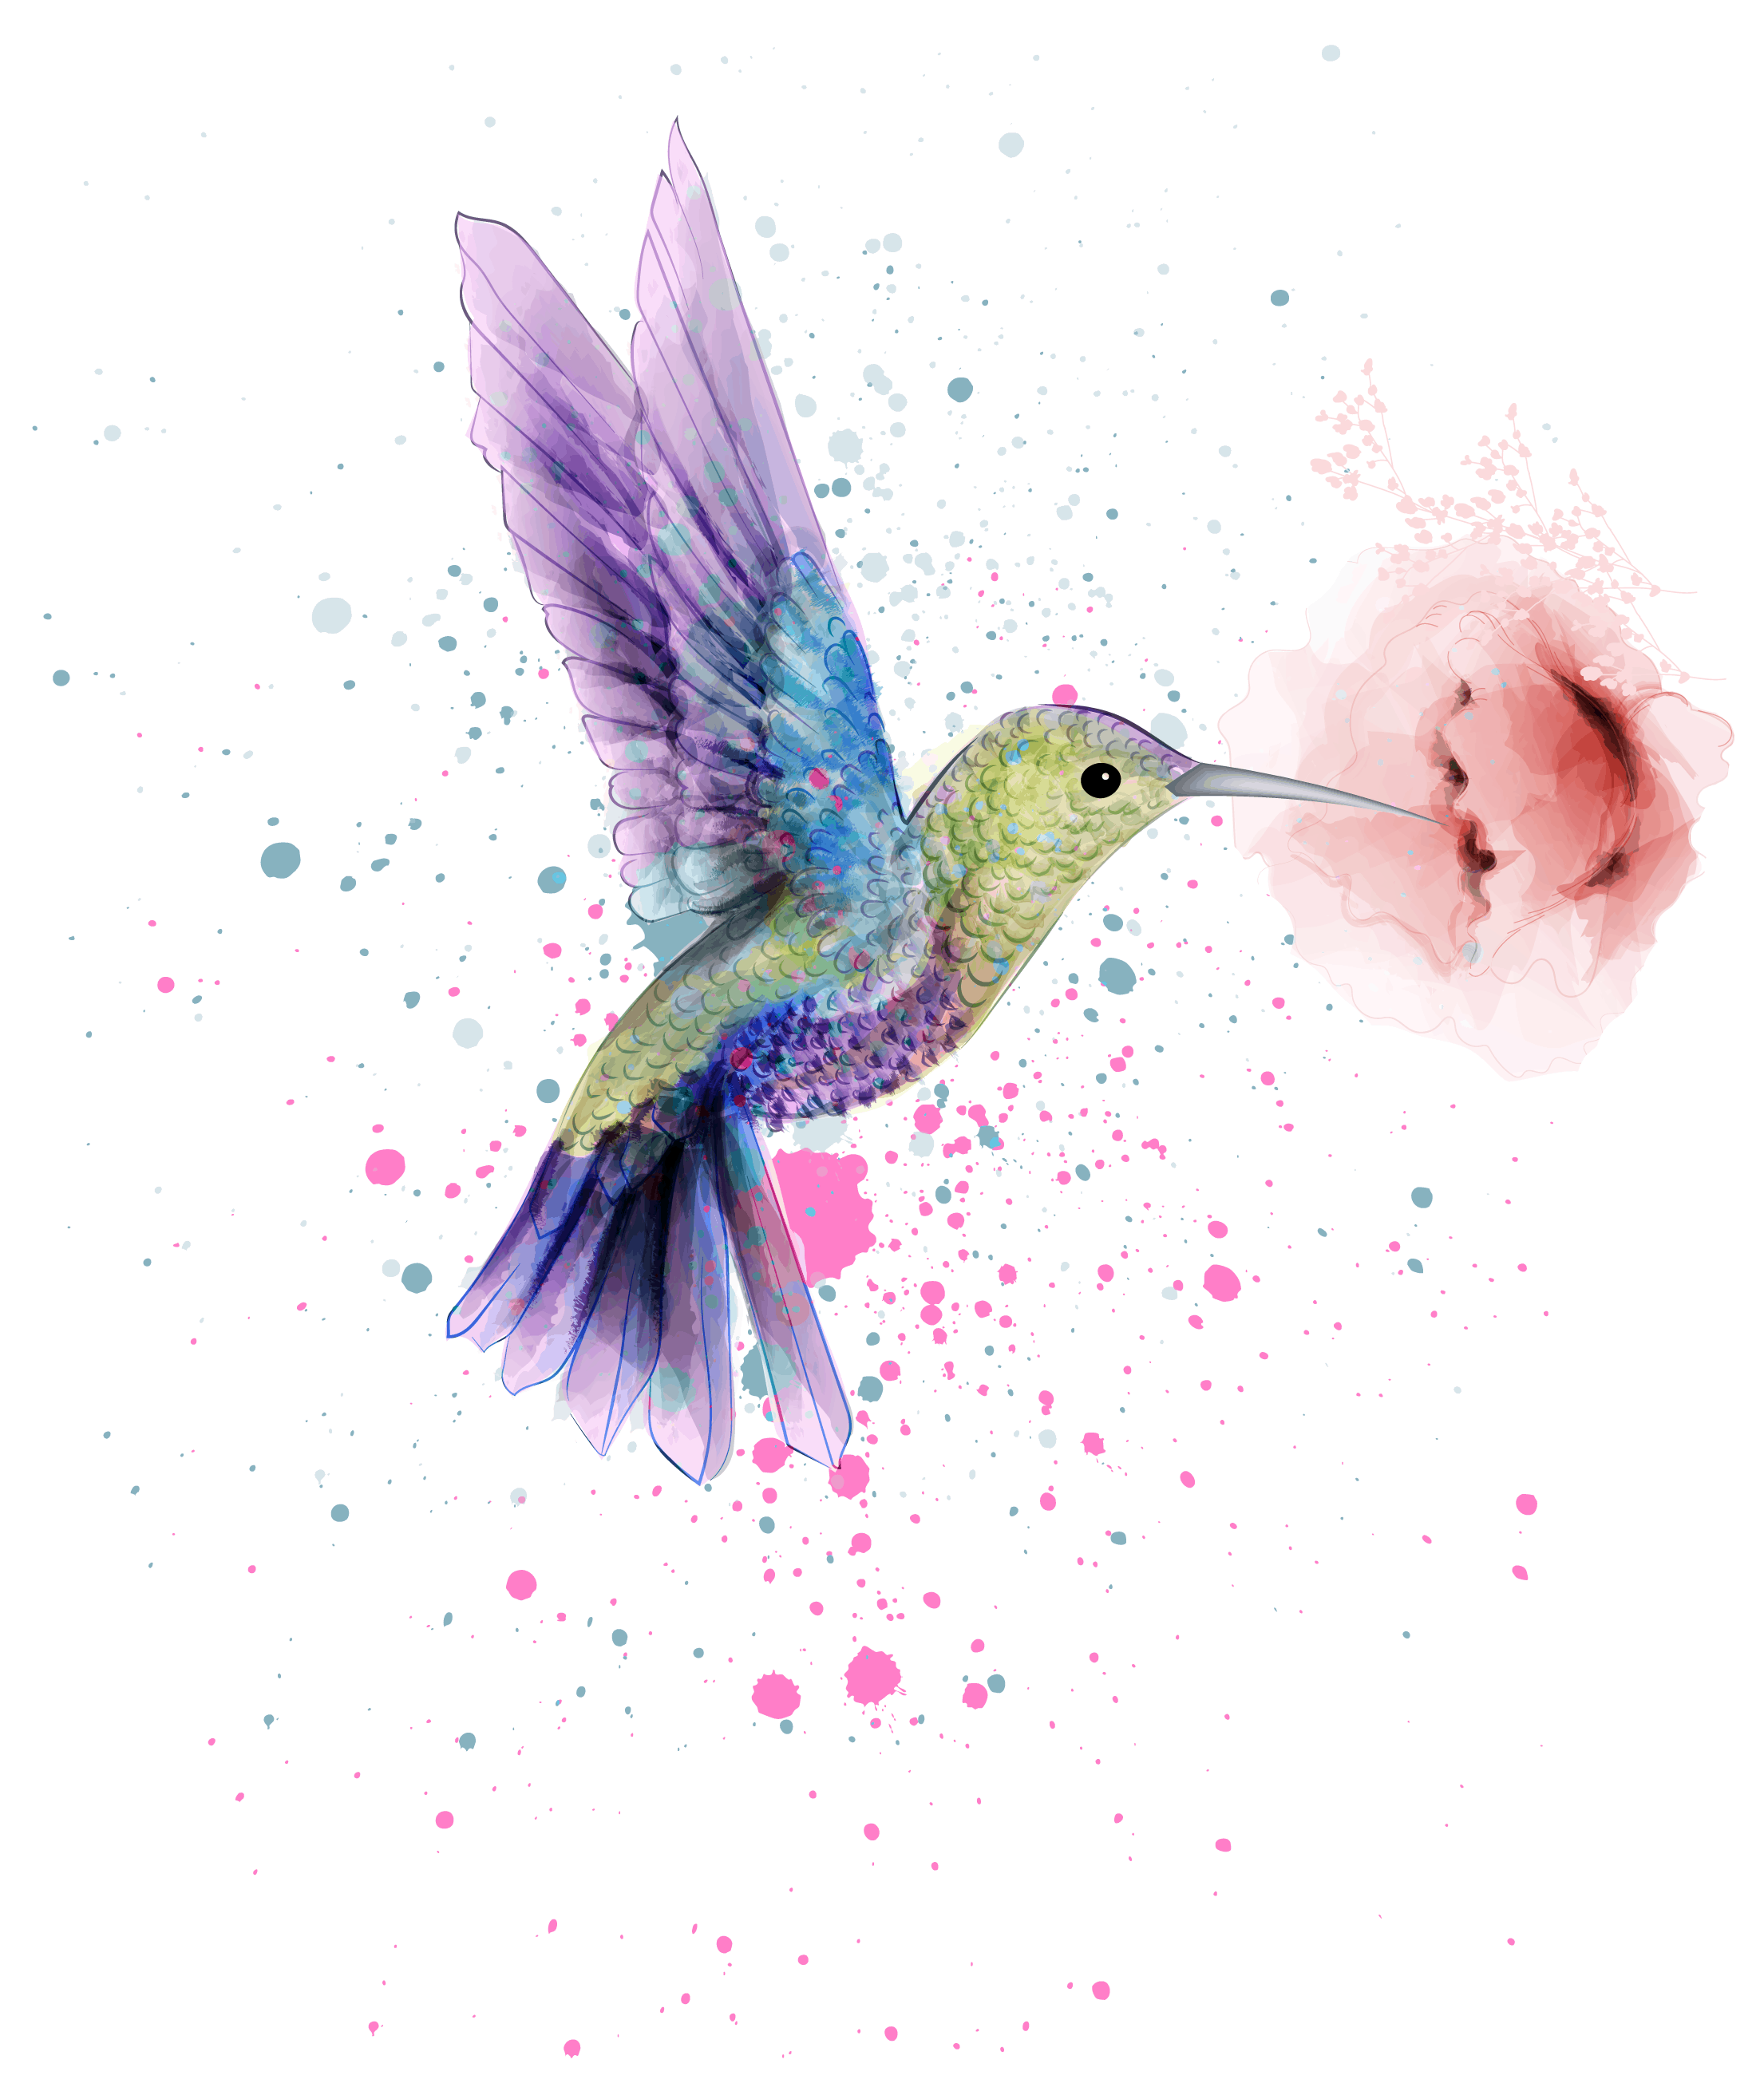 Hummingbird Symbolism and Meaning Explained, a Humming Bird Illustration Image